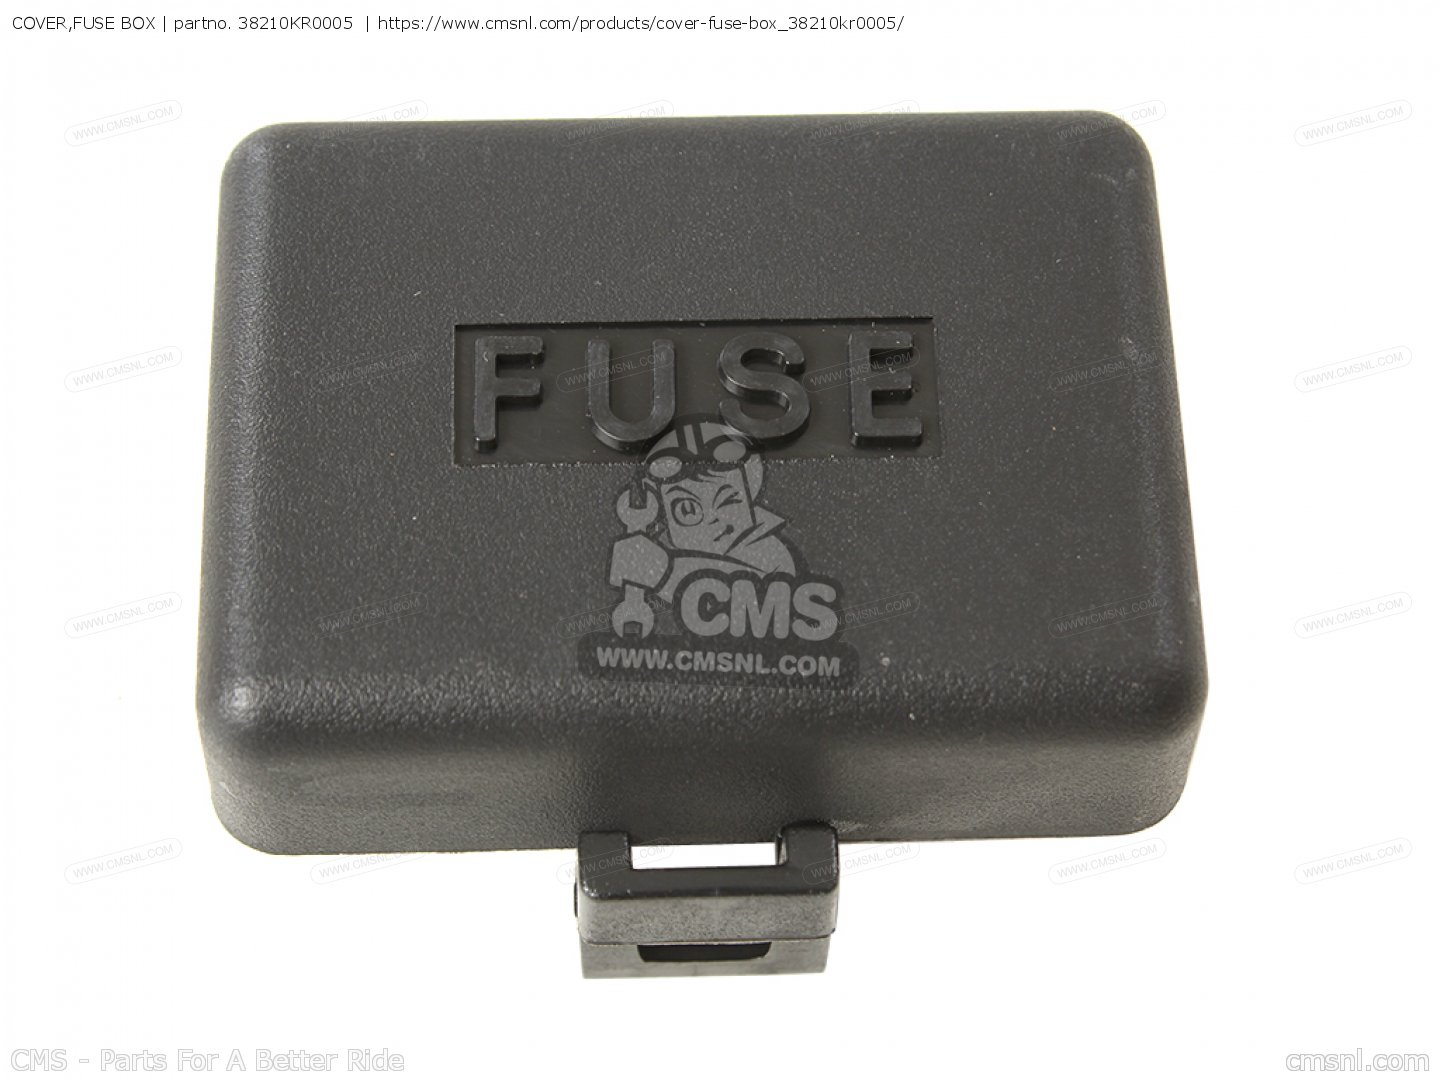 cover fuse box nx650 dominator 1989 k england mkh 38210kr0005 cover fuse box photo